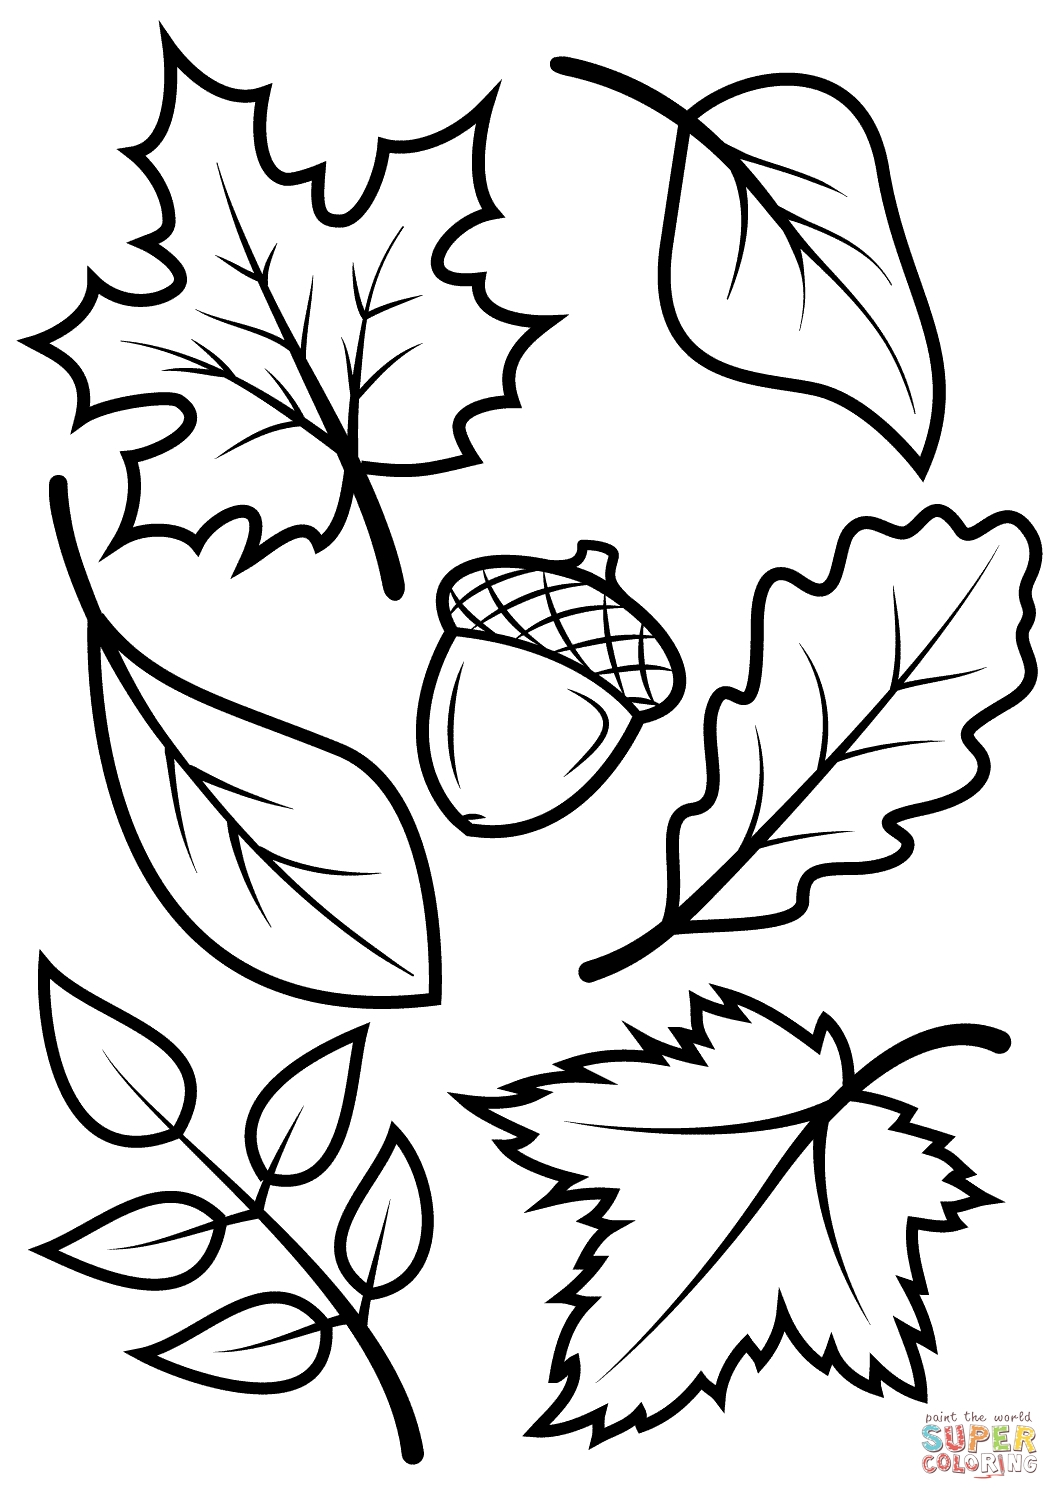 letter a coloring pages - color page of leaves fall leaves and acorn coloring page free printable coloring pages